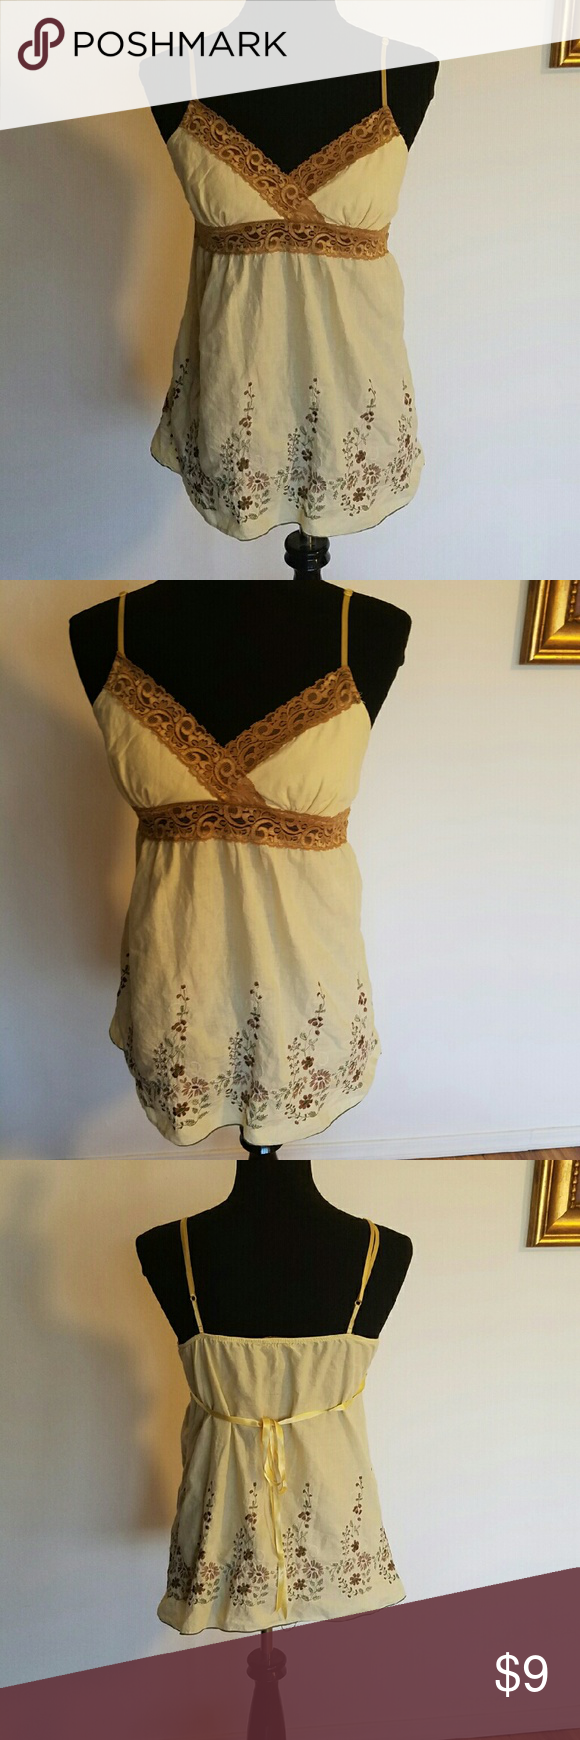 Canary yellow embroidered top Lightweight cotton and lace top Tops